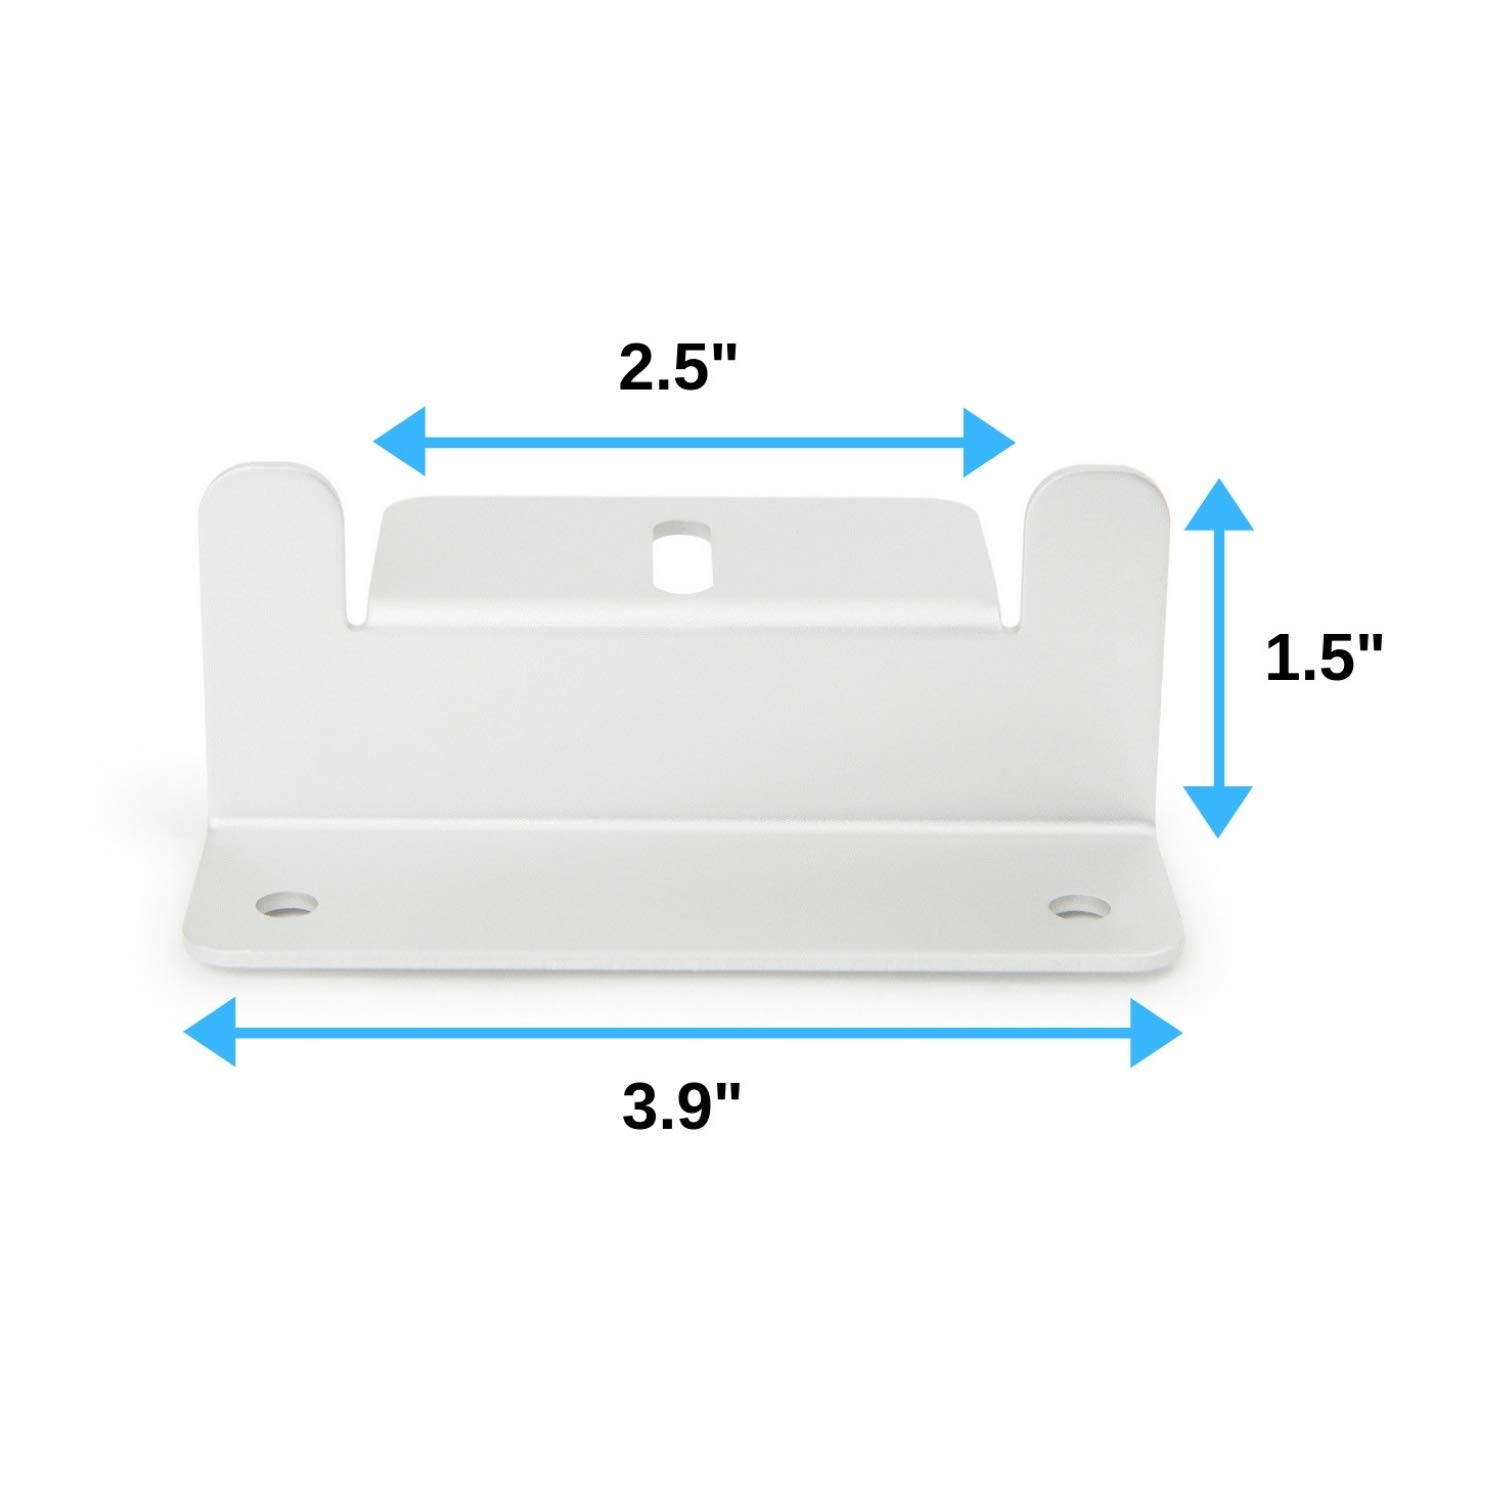 Houseables Solar Panel Mounting Brackets, Roof Panels Z Bracket, 2.5'' x 1.5'' x 3.9'', 4 Sets (16 Pc), Silver, Aluminum, Adjustable Mount Bolt Kit, Accessories for Boats, Wind Generators, RVs, Trailers by Houseables (Image #2)